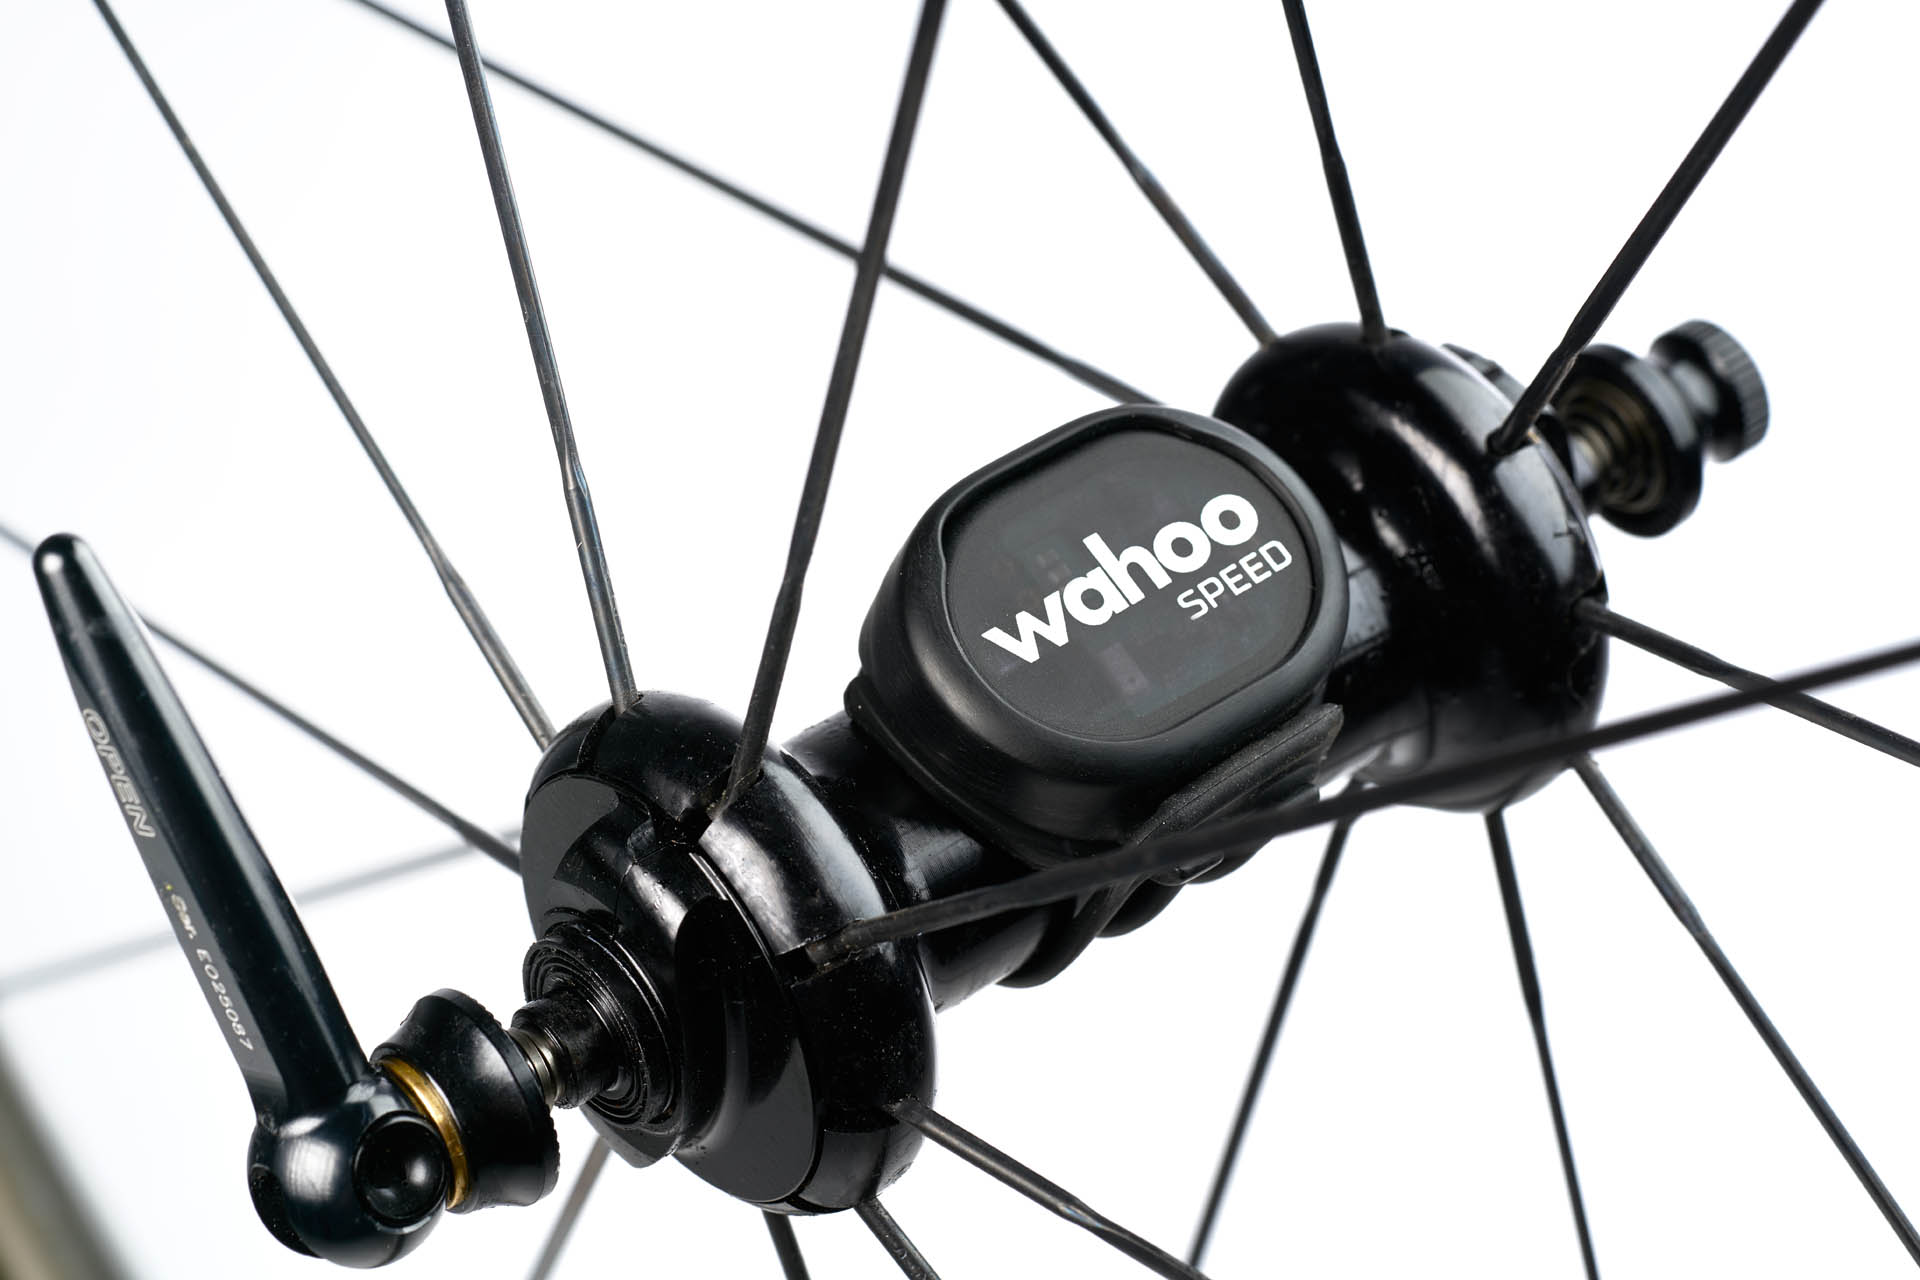 Wahoo-RPM Speed-Product-09